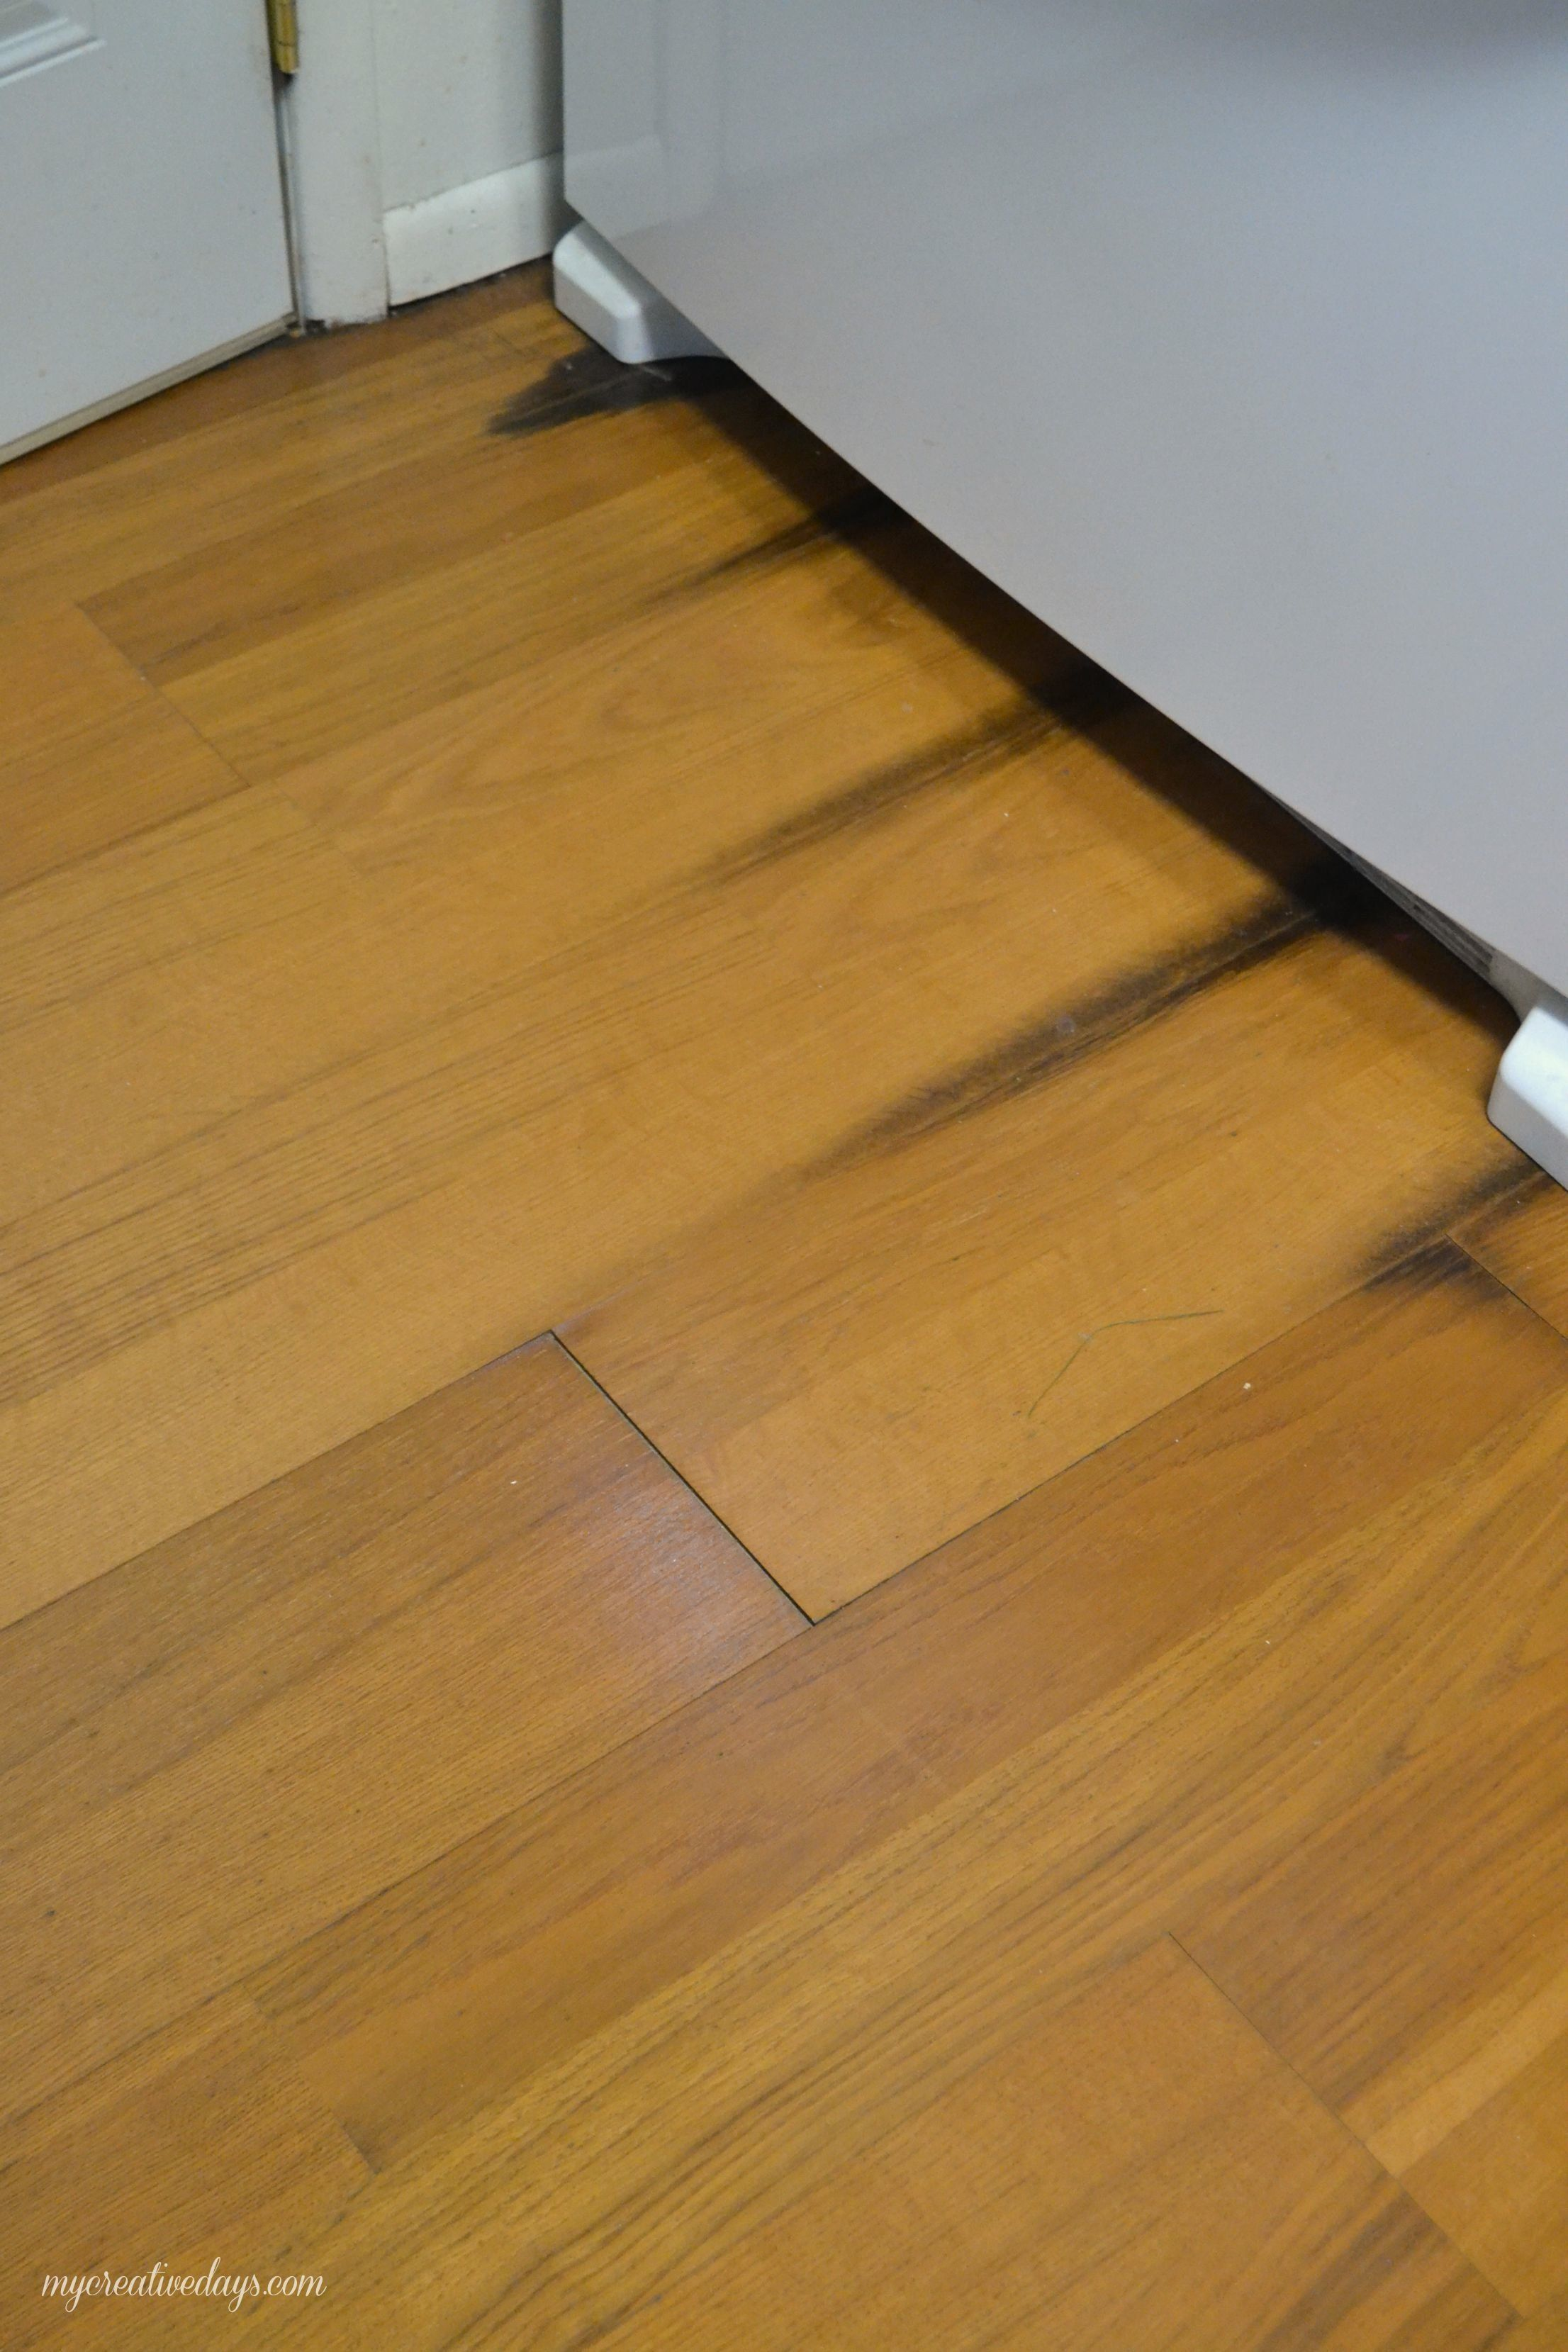 Can Laminate Flooring Be Laid Over Carpet Underlay